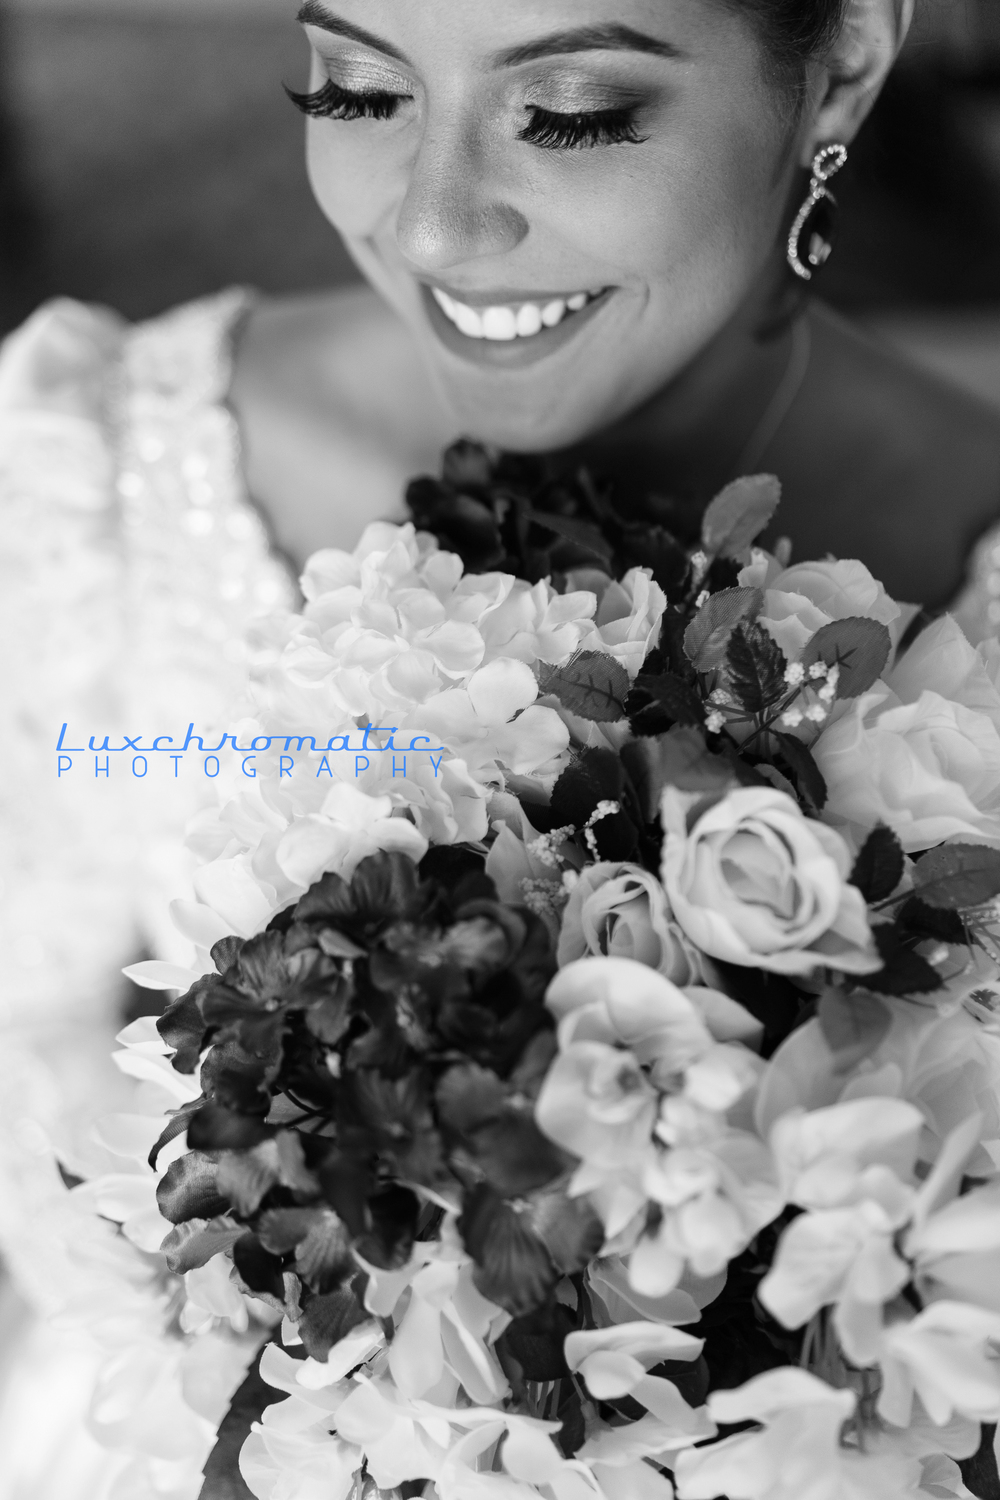 San-Francisco-Bay-Area-Wedding-Fremont-Bride-Luxchromatic-Photography_Diondra_Scott-1208 copy.jpg